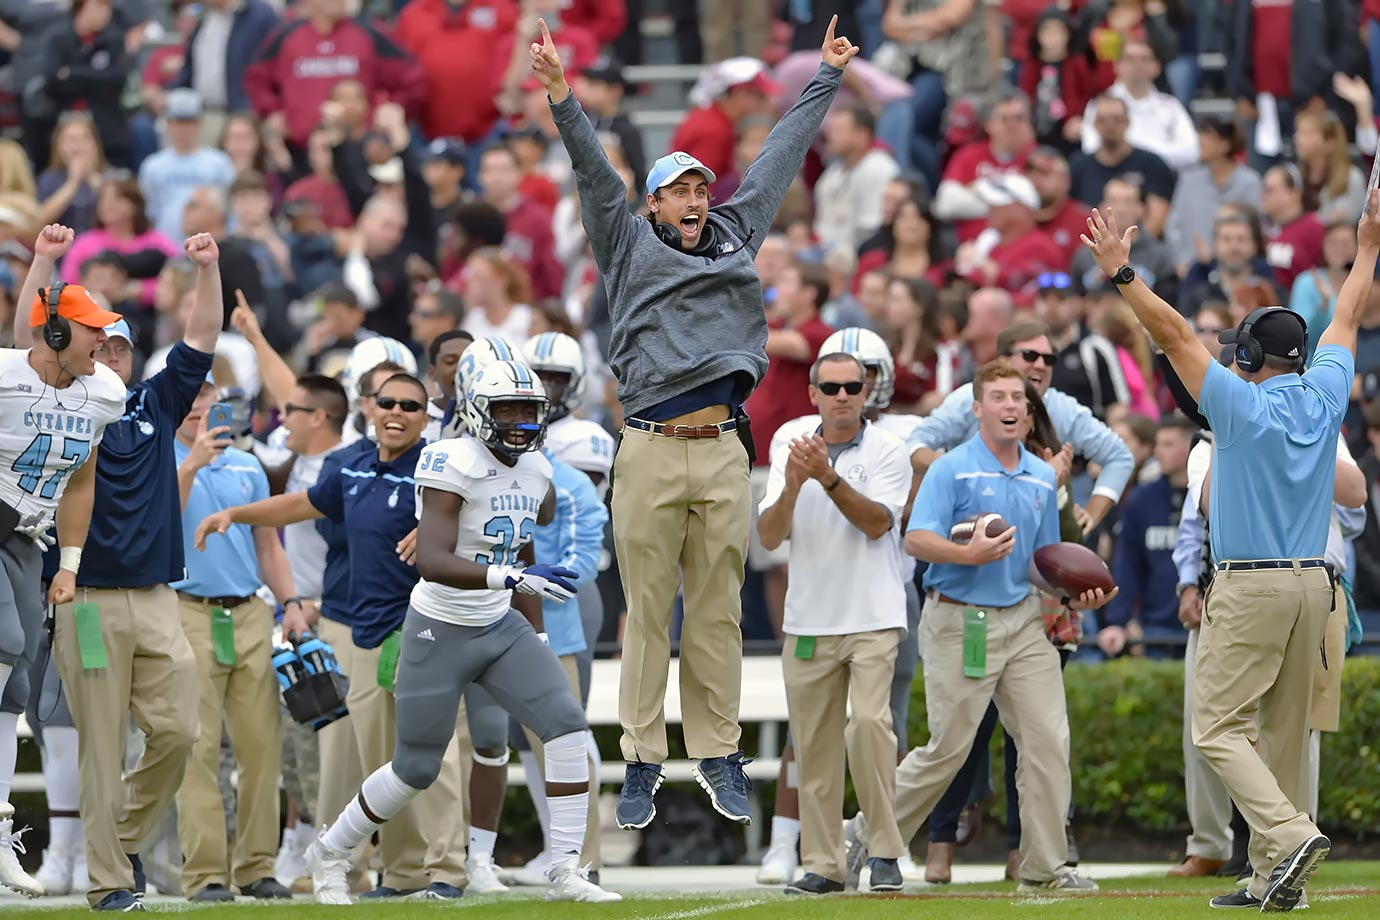 A member of the Citadel coaching staff manages to celebrate while stiff as a board.